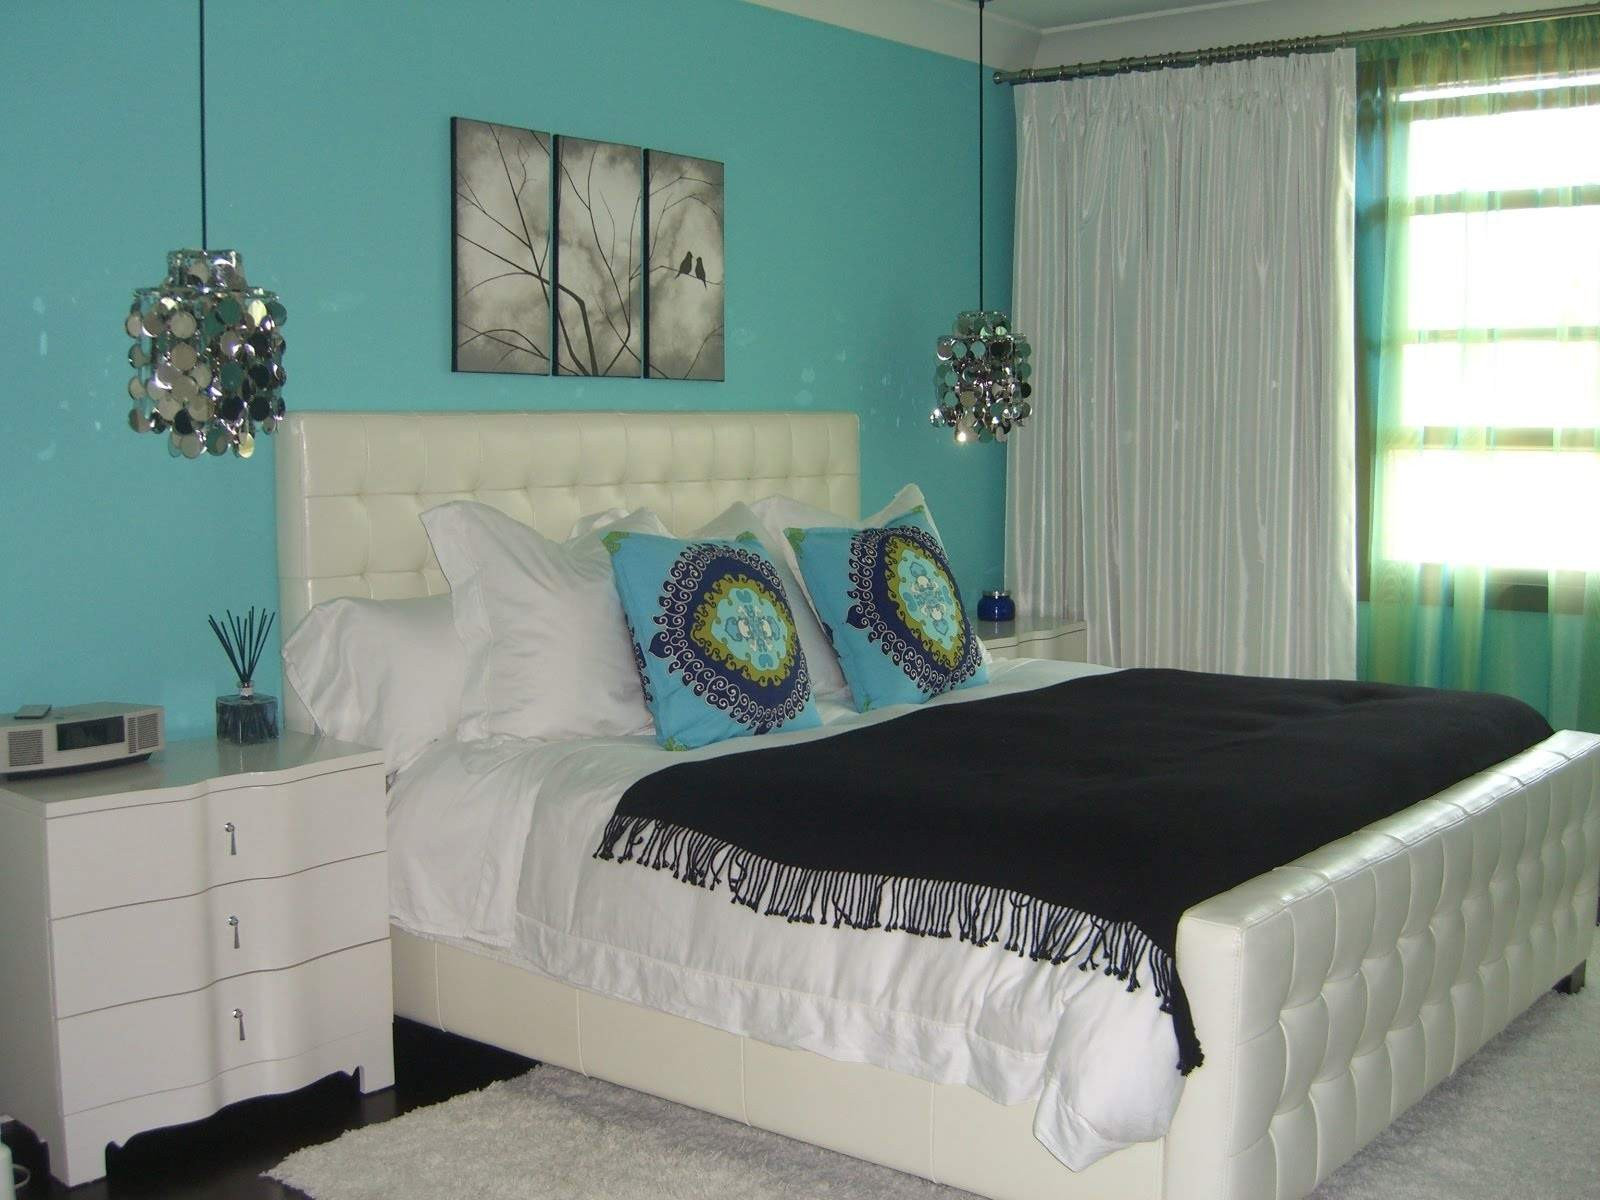 Teal and Black Bedroom Ideas Unique Mix Patterns In A Black Bedroom